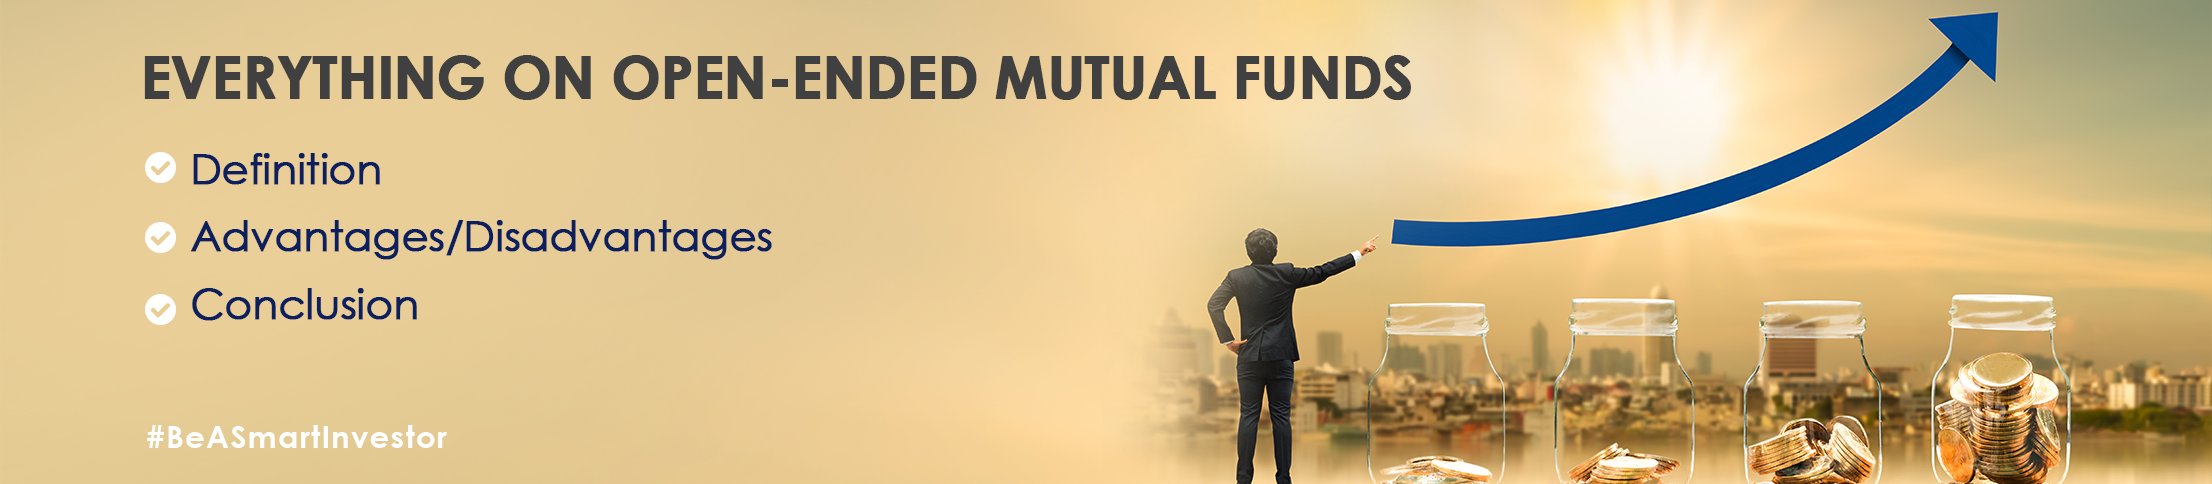 Open Ended Mutual Funds Meaning, Advantages & Disadvantages